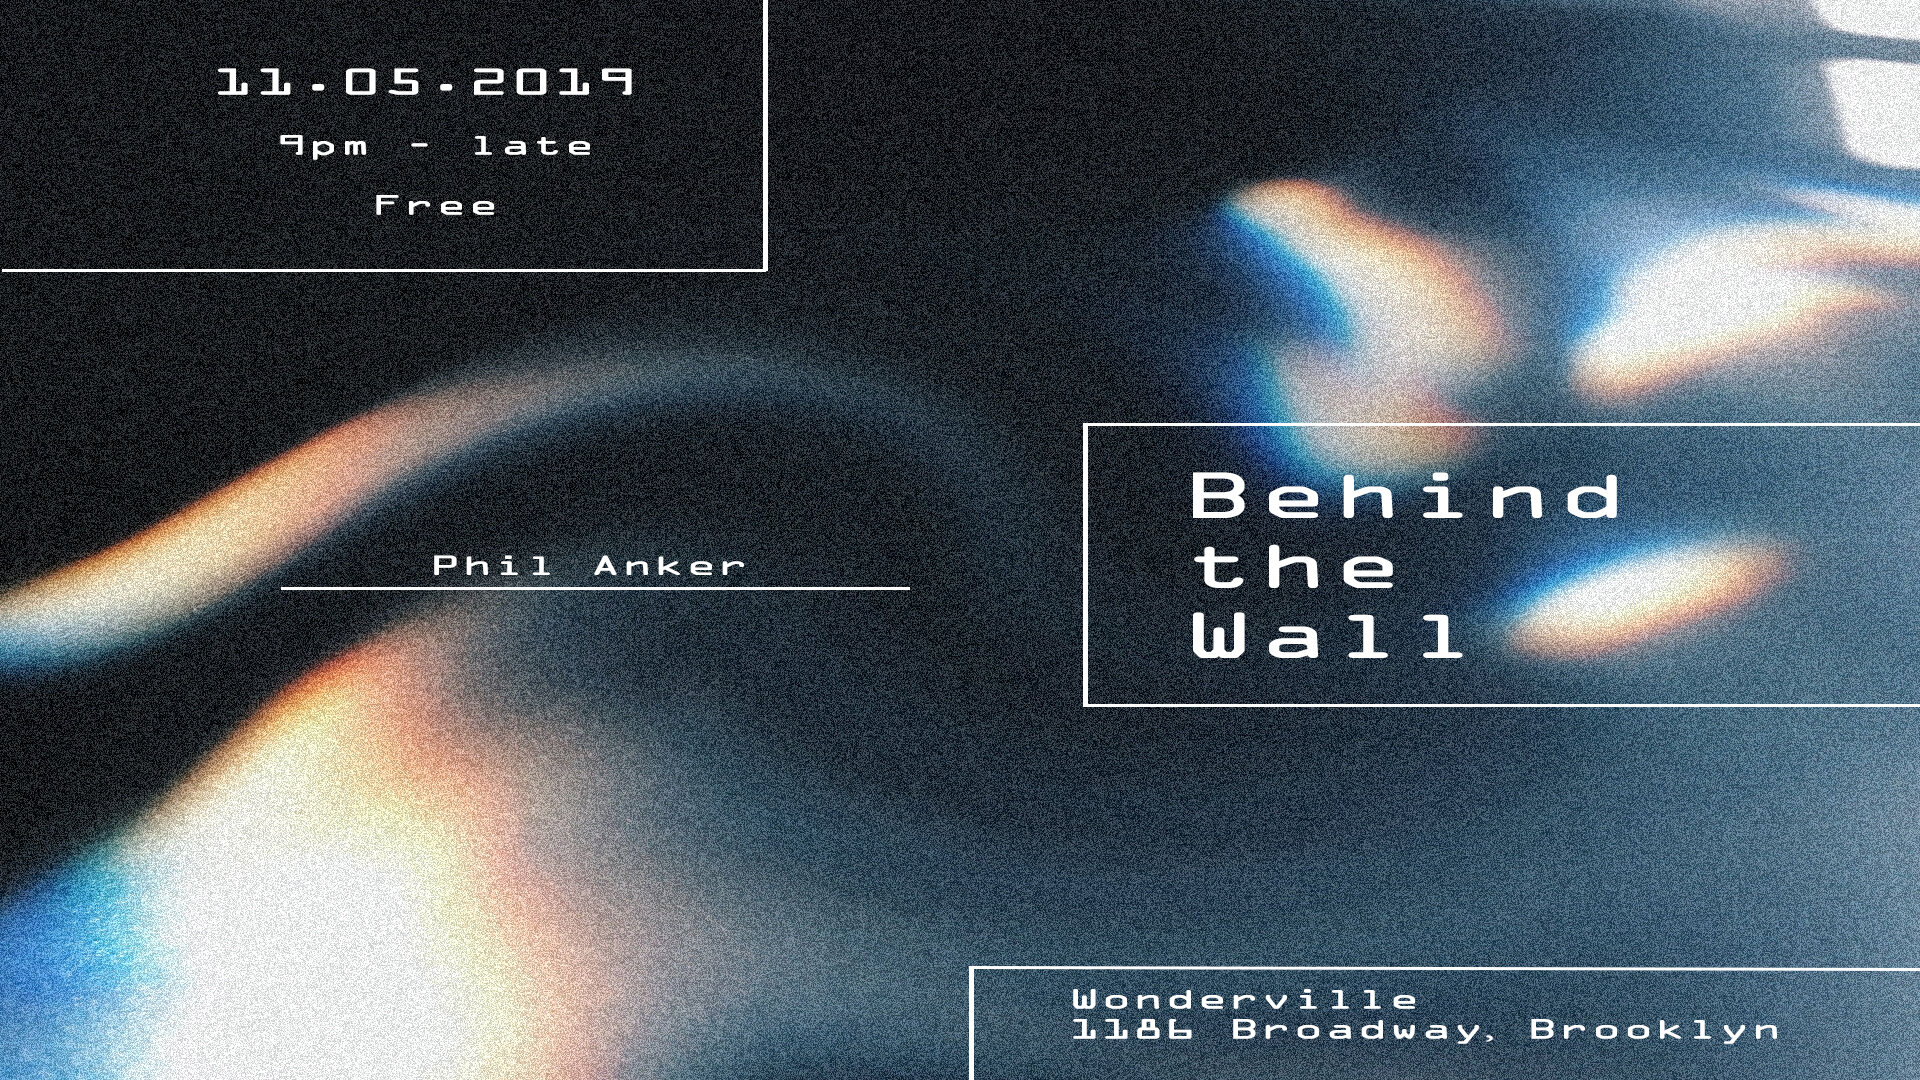 RSVP:  https://withfriends.co/event/2877399/behind_the_wall